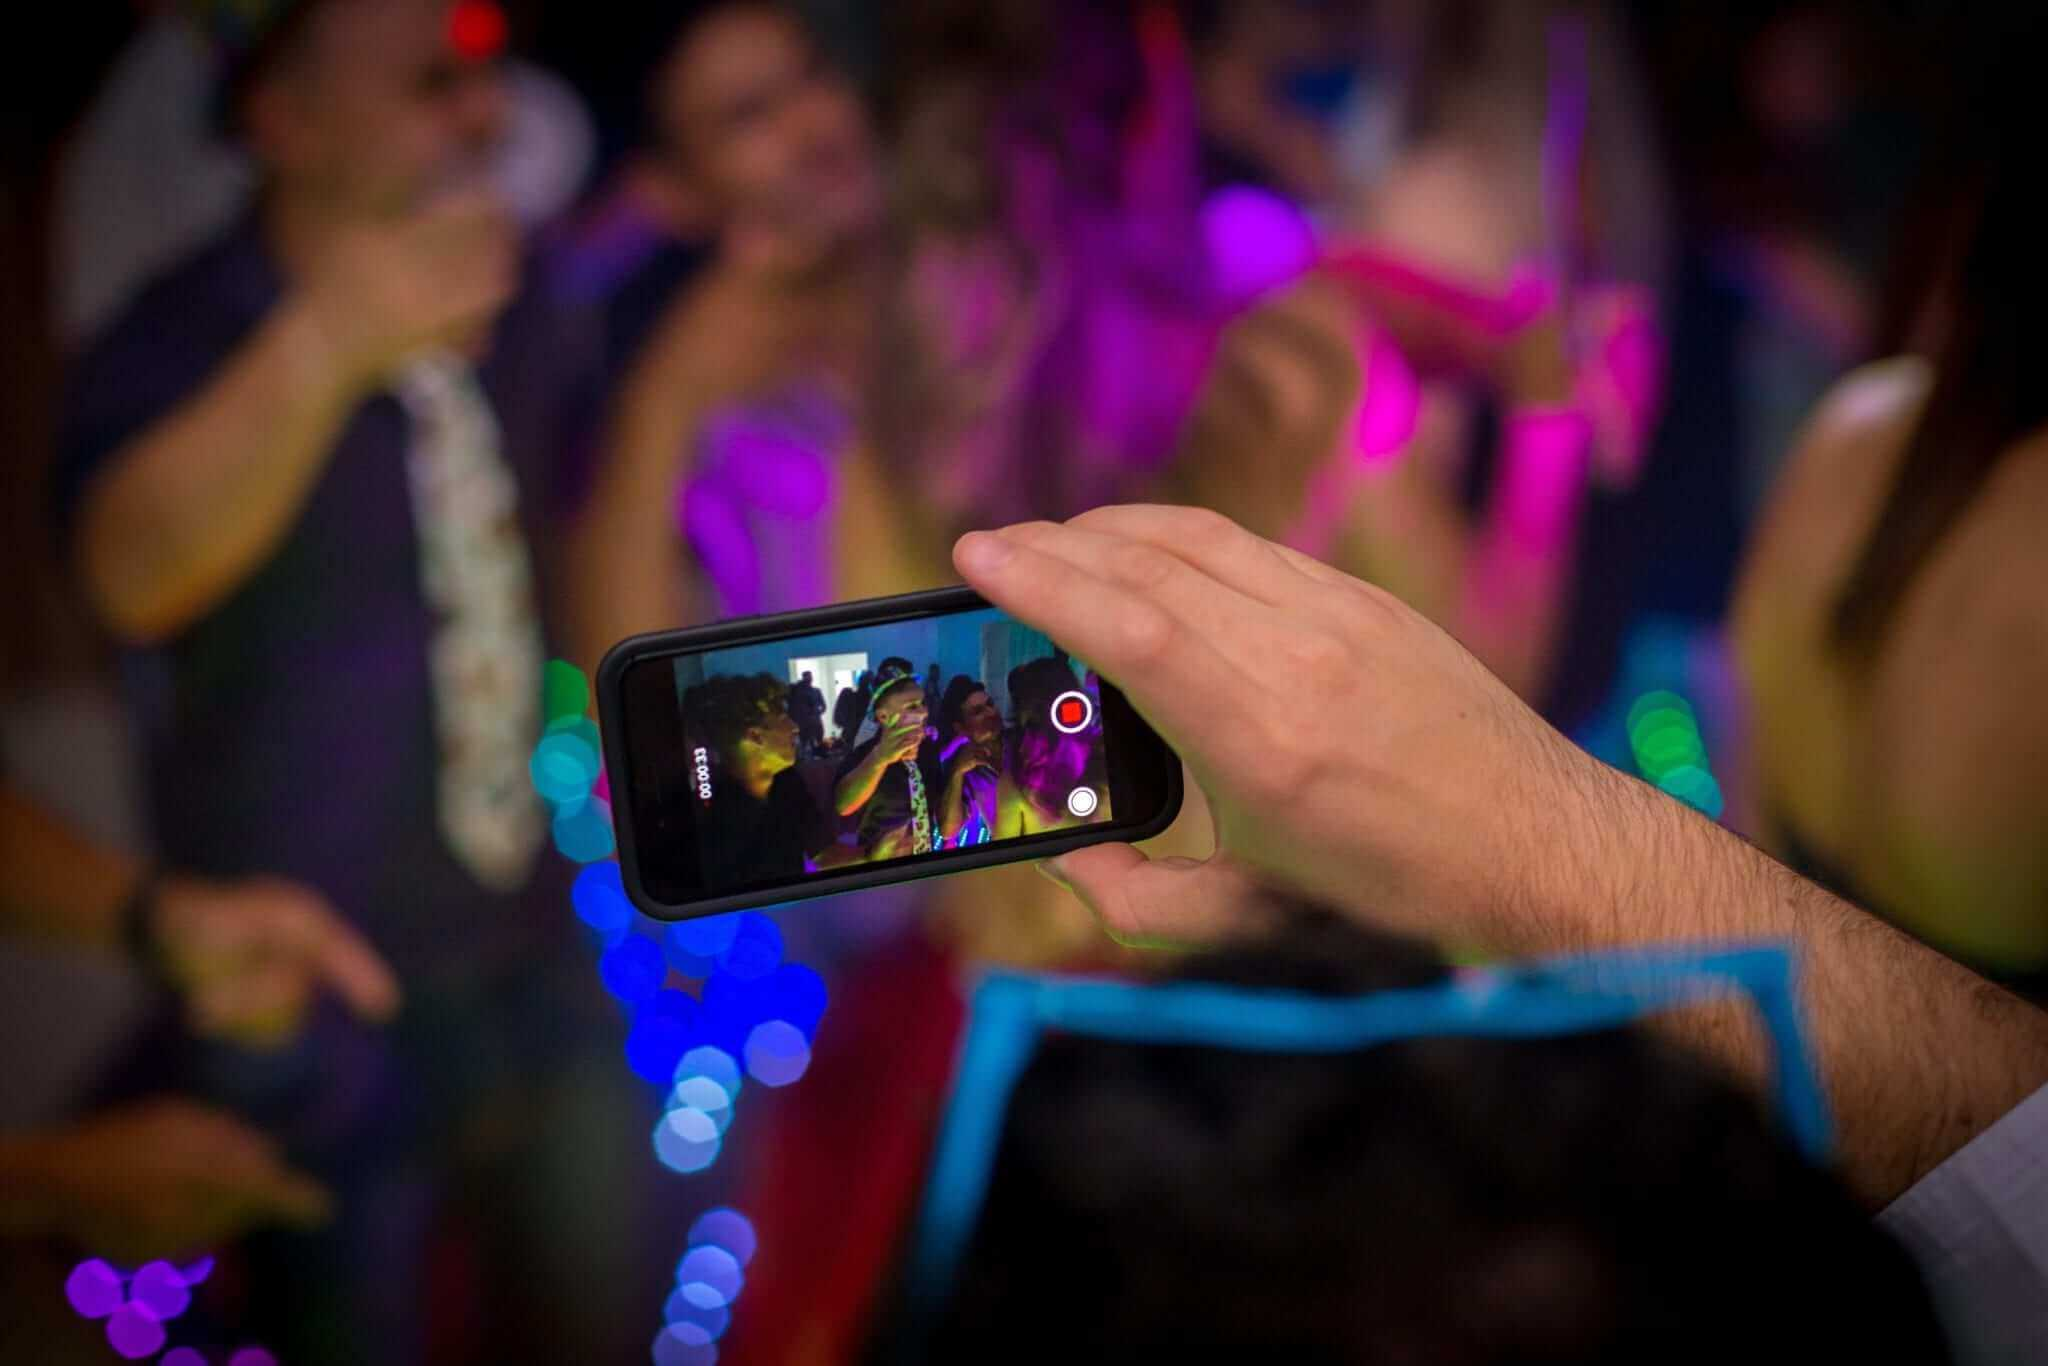 On Video and Audio Recording using your Mobile Phone